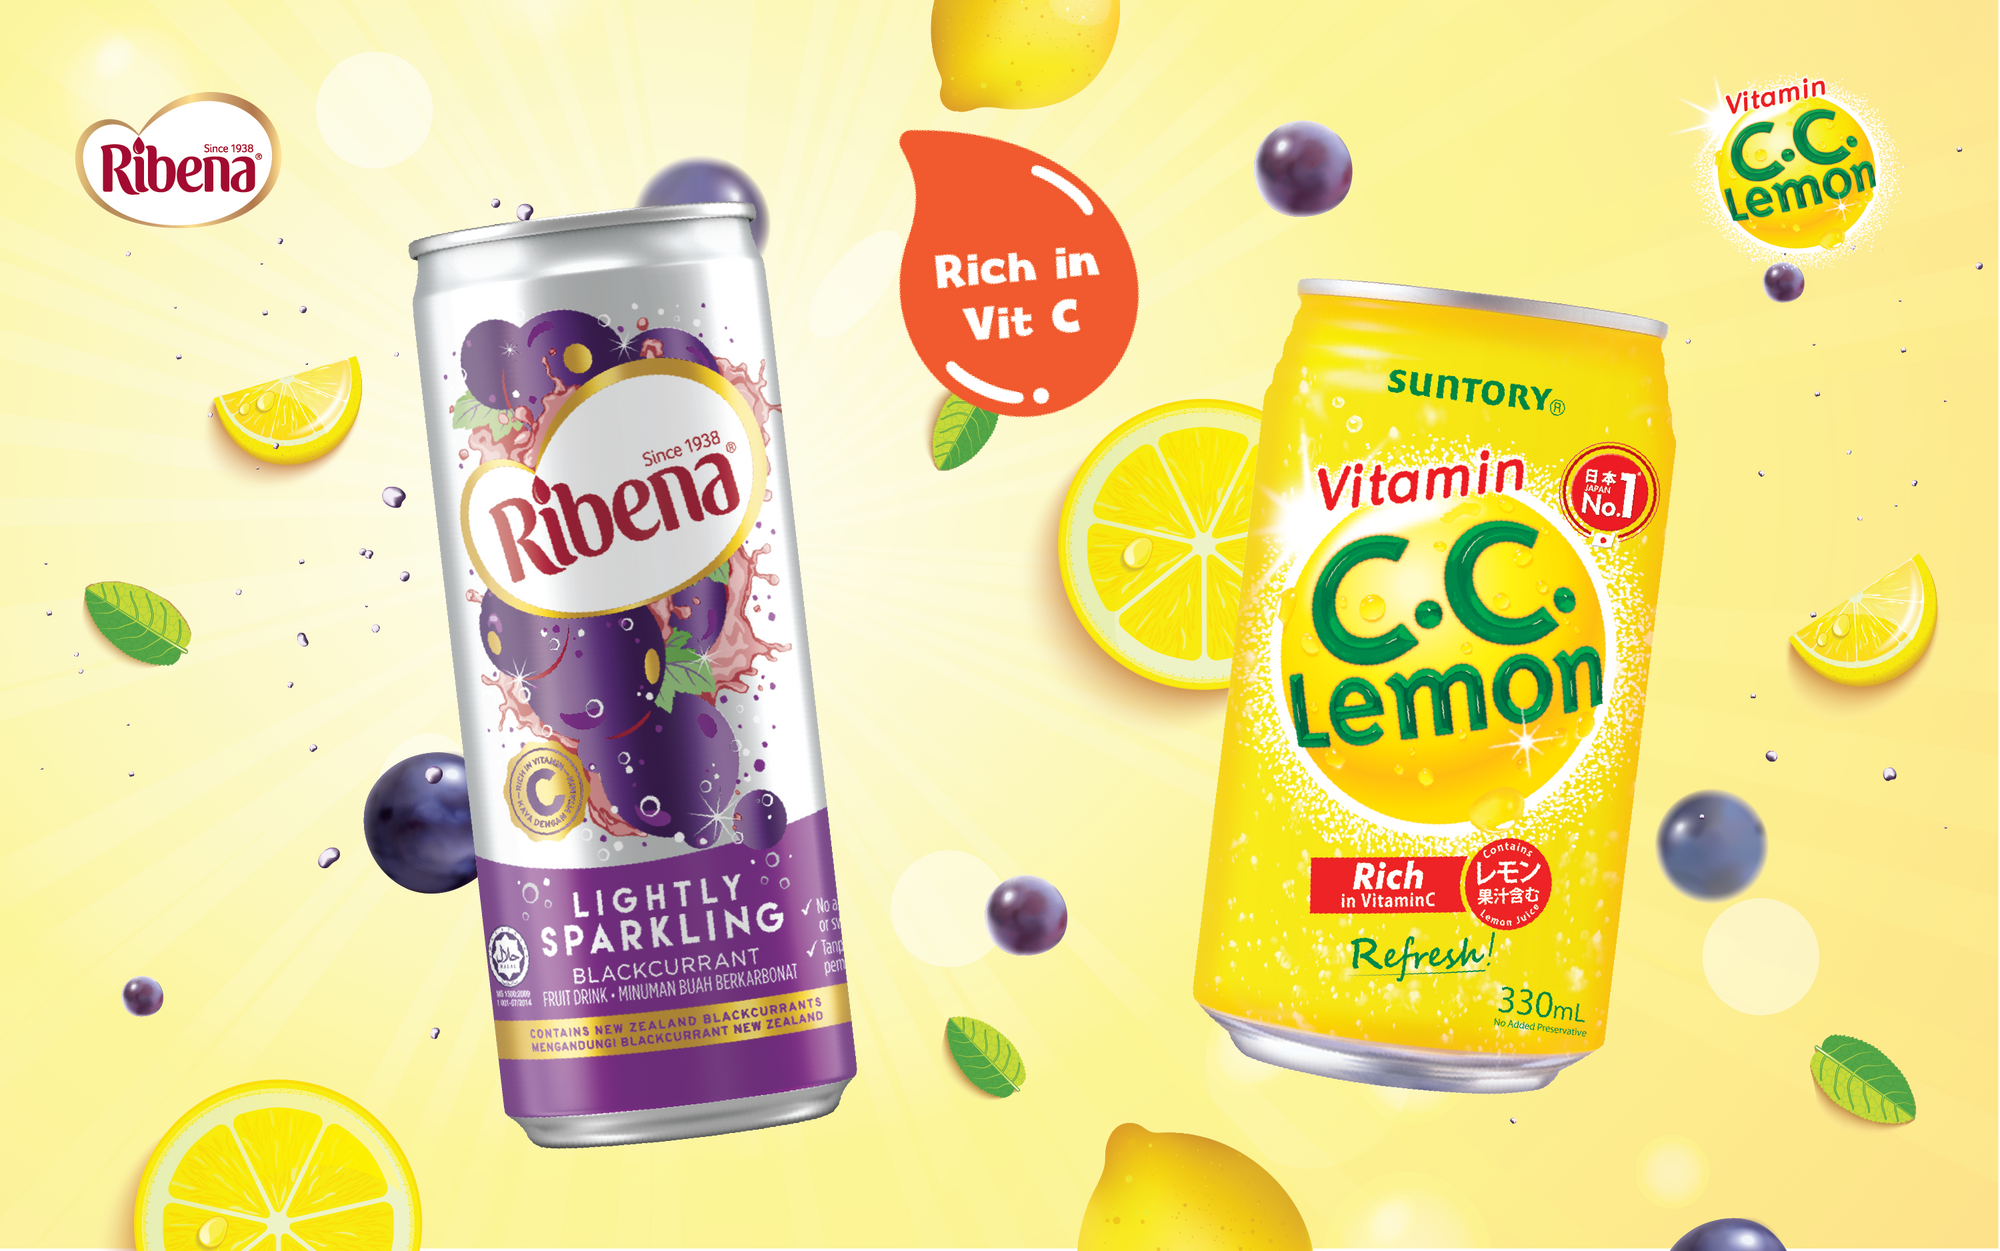 Pack on Your Daily Dose of Vitamin C with These Delicious Fruity Drinks